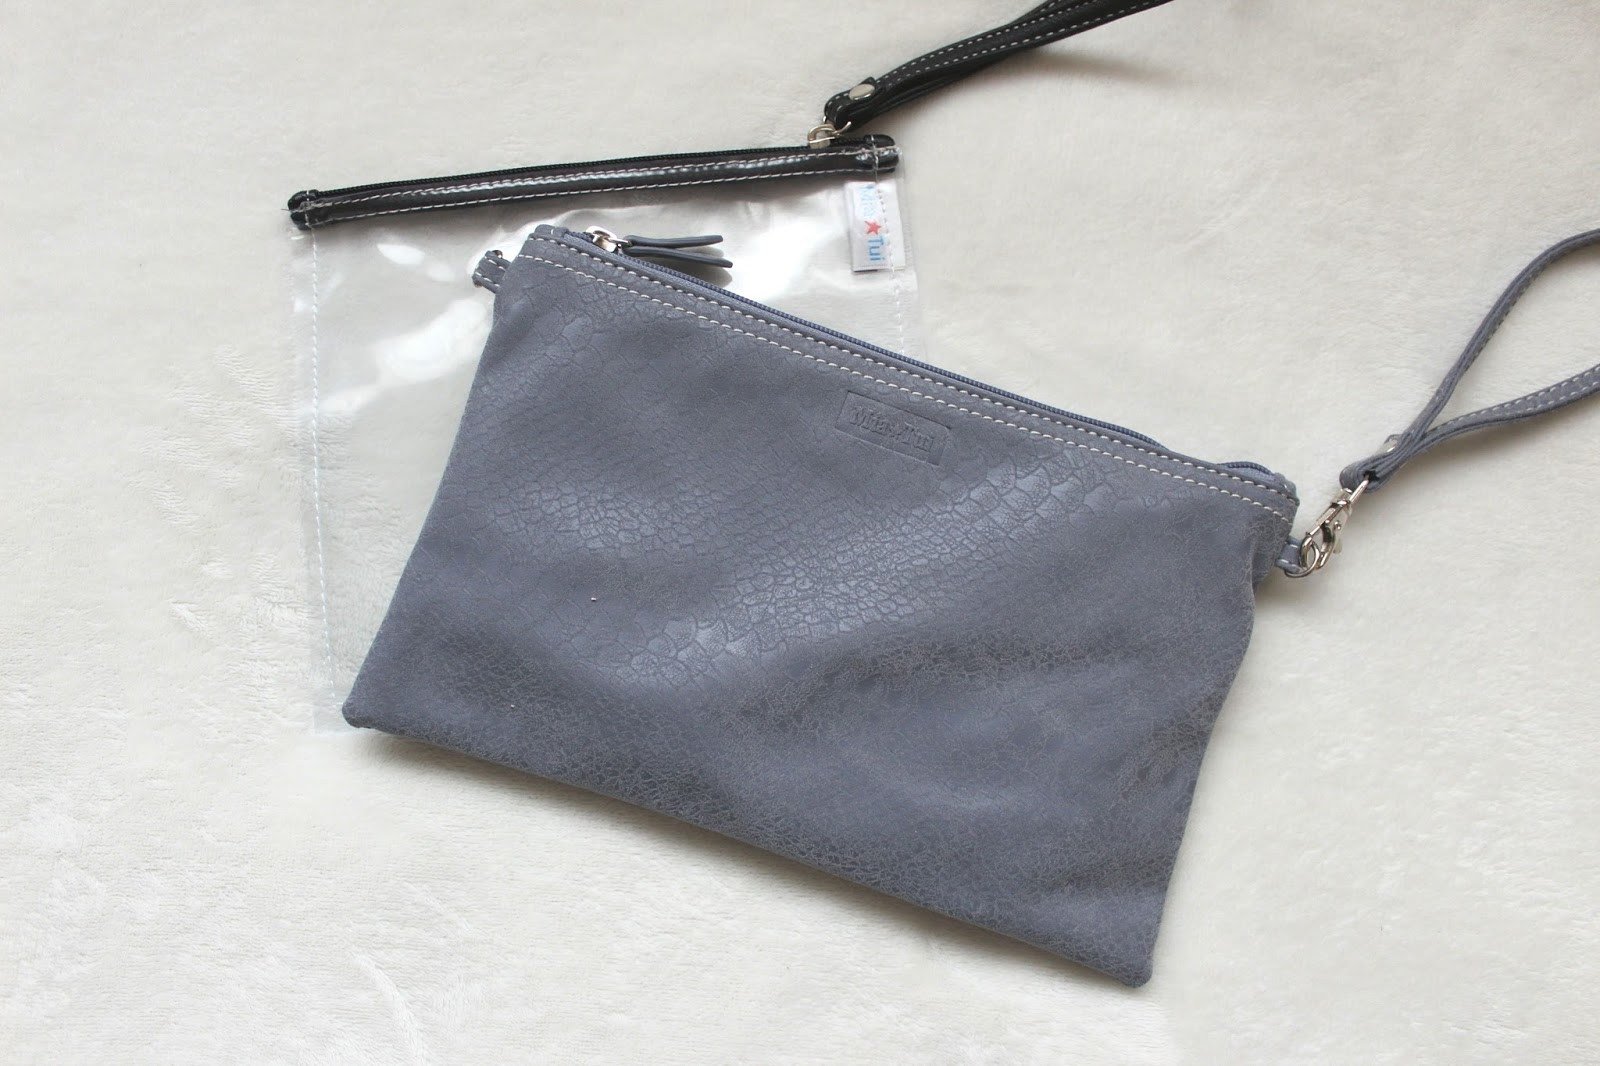 Small clear bag with a small grey clutch bag laid on top.